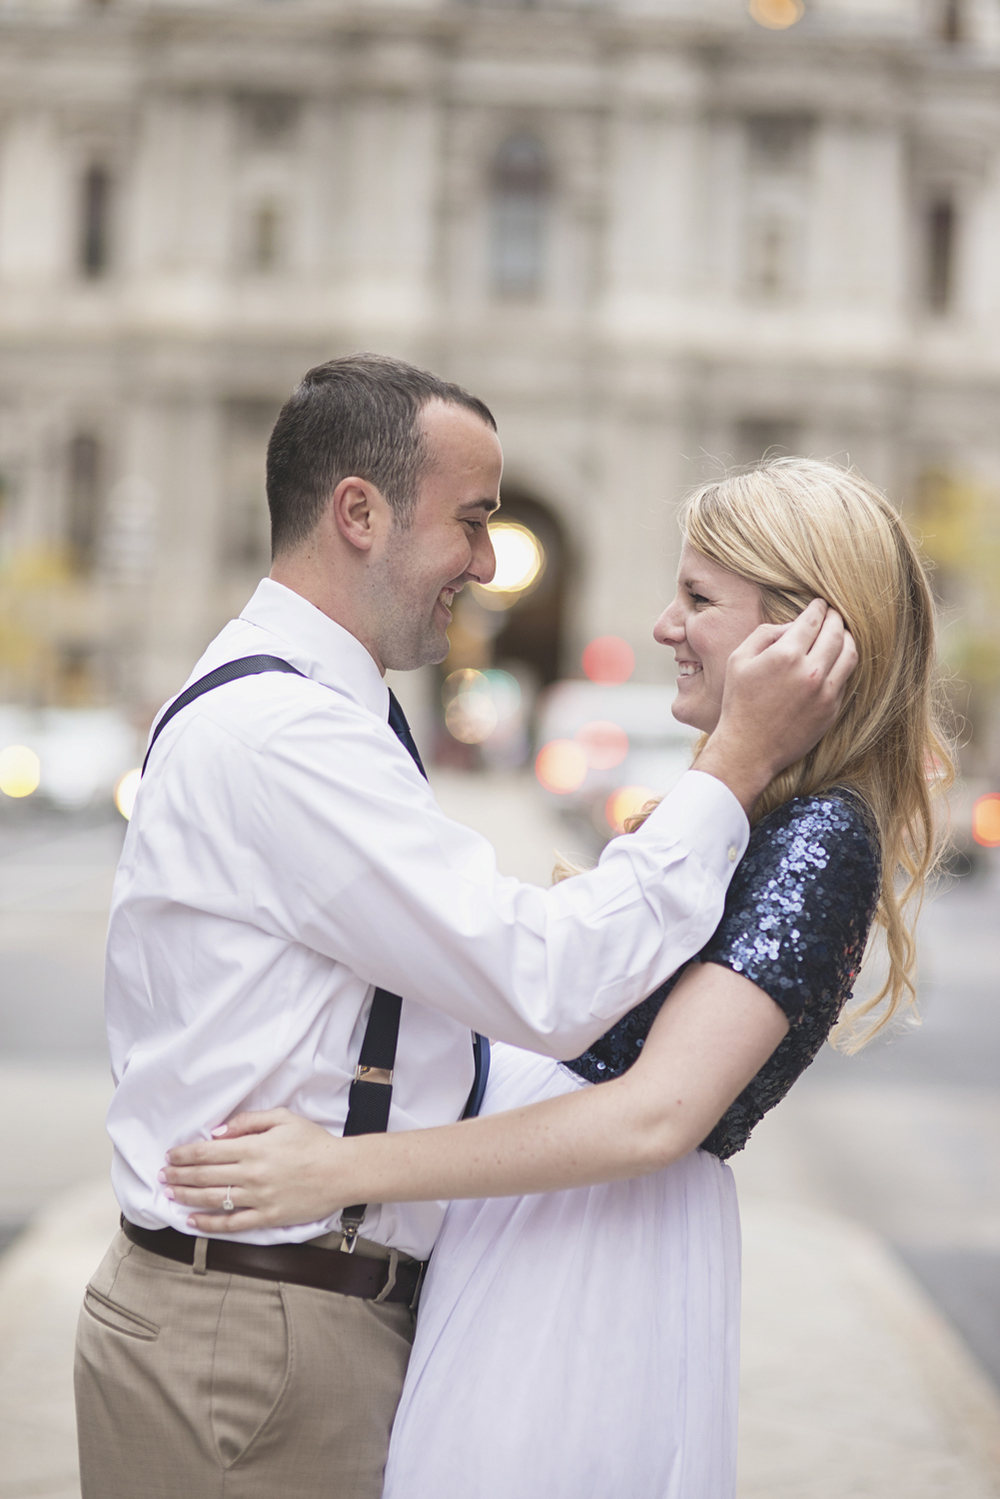 Philadelphia City Hall Engagement Session | White tulle skirt